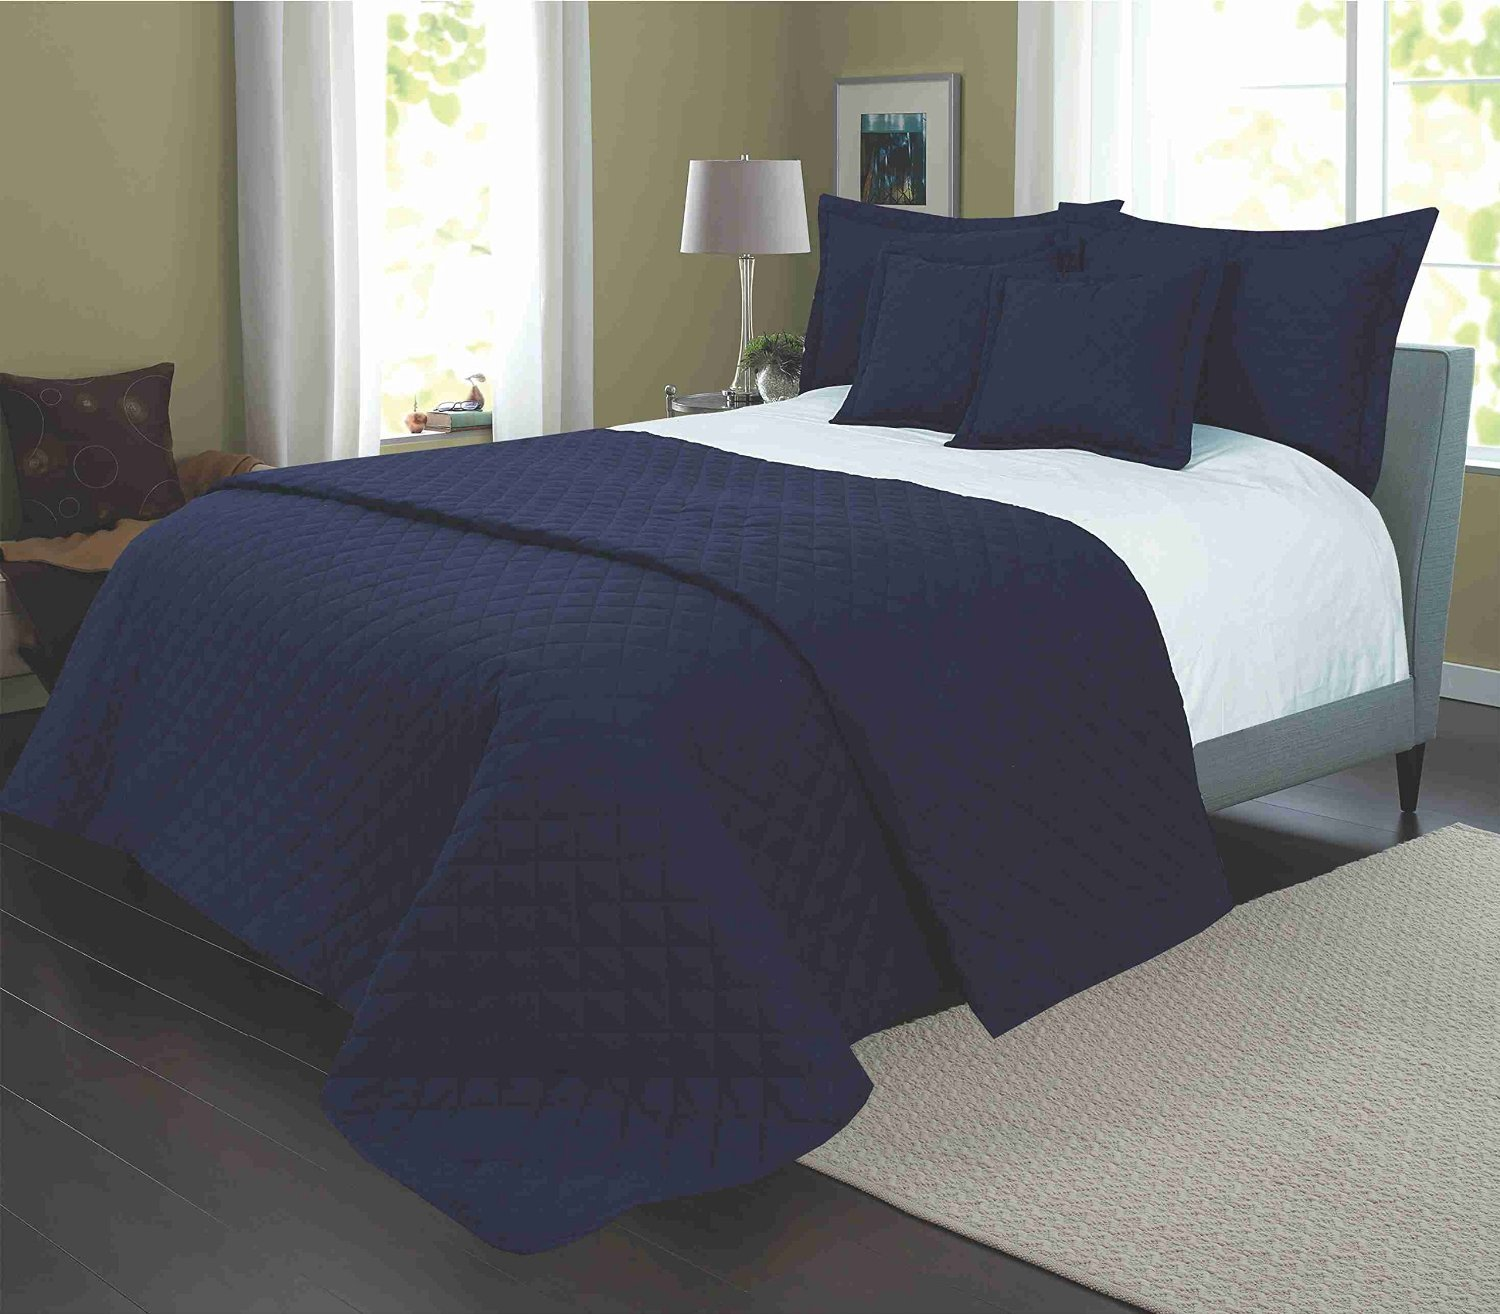 QUILTED EGYPTIAN COTTON BEDSPREAD BED THROW WITH 2 PILLOWSHAMS AND 2  CUSHIONS, FITS DOUBLE AND KING SIZE BED   NAVY BLUE: Amazon.co.uk: Kitchen  U0026 Home